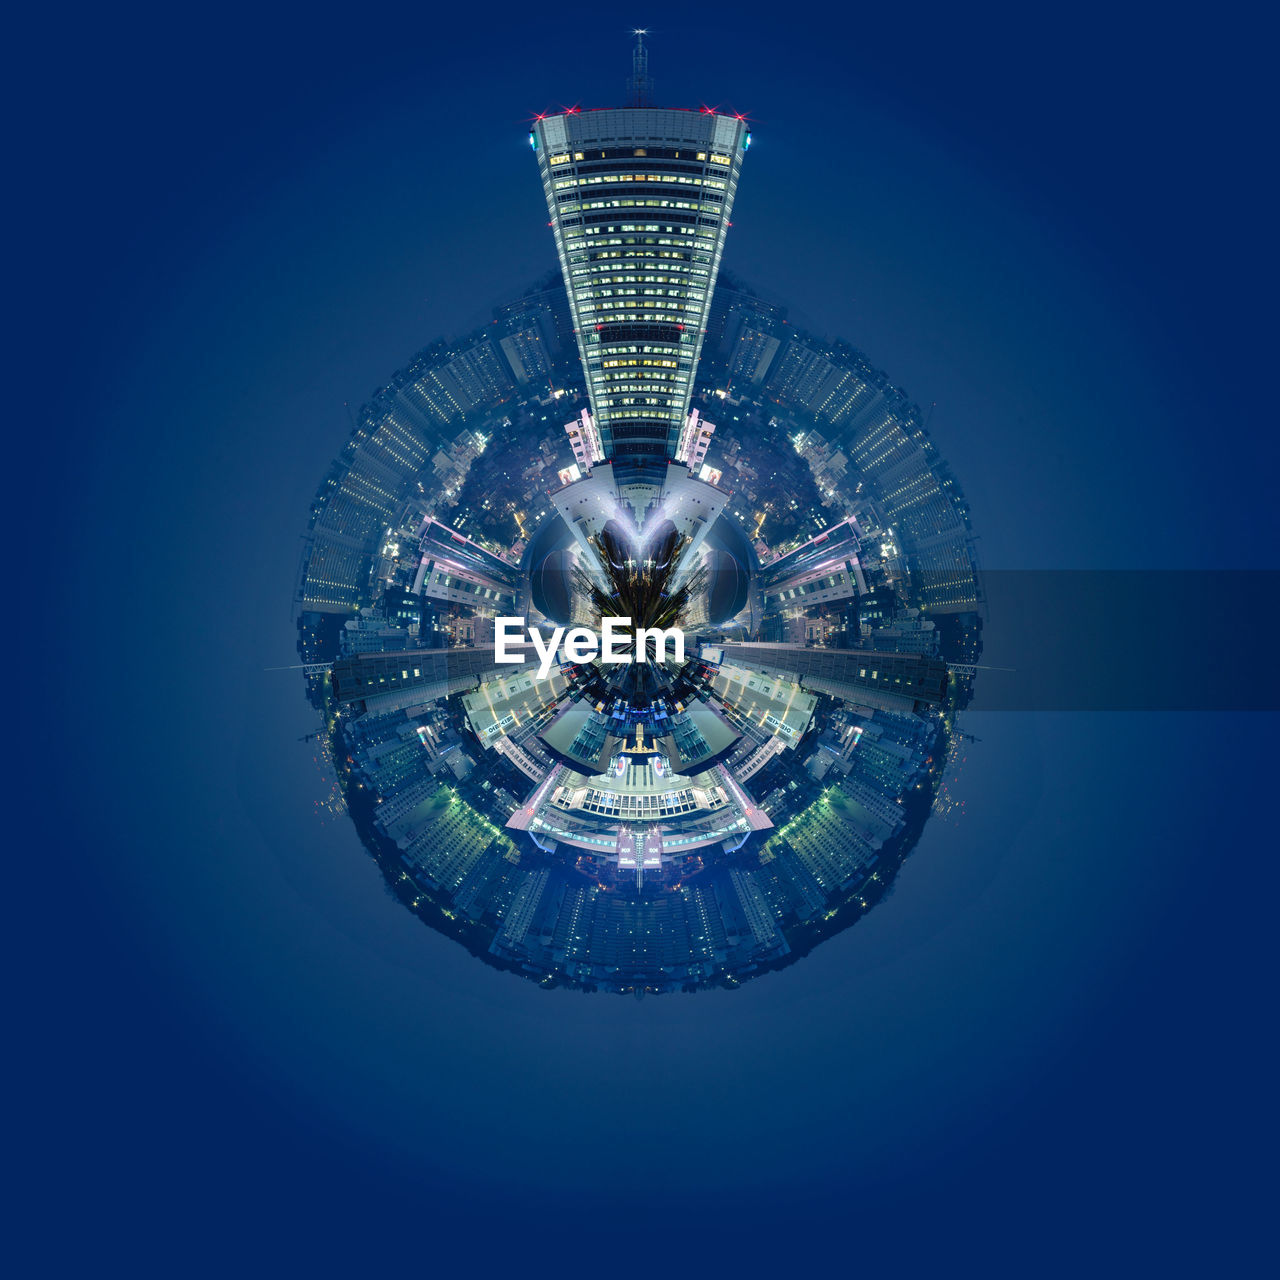 cityscape, fish-eye lens, architecture, city, illuminated, built structure, skyscraper, building exterior, blue, clear sky, no people, night, modern, outdoors, planet earth, residential